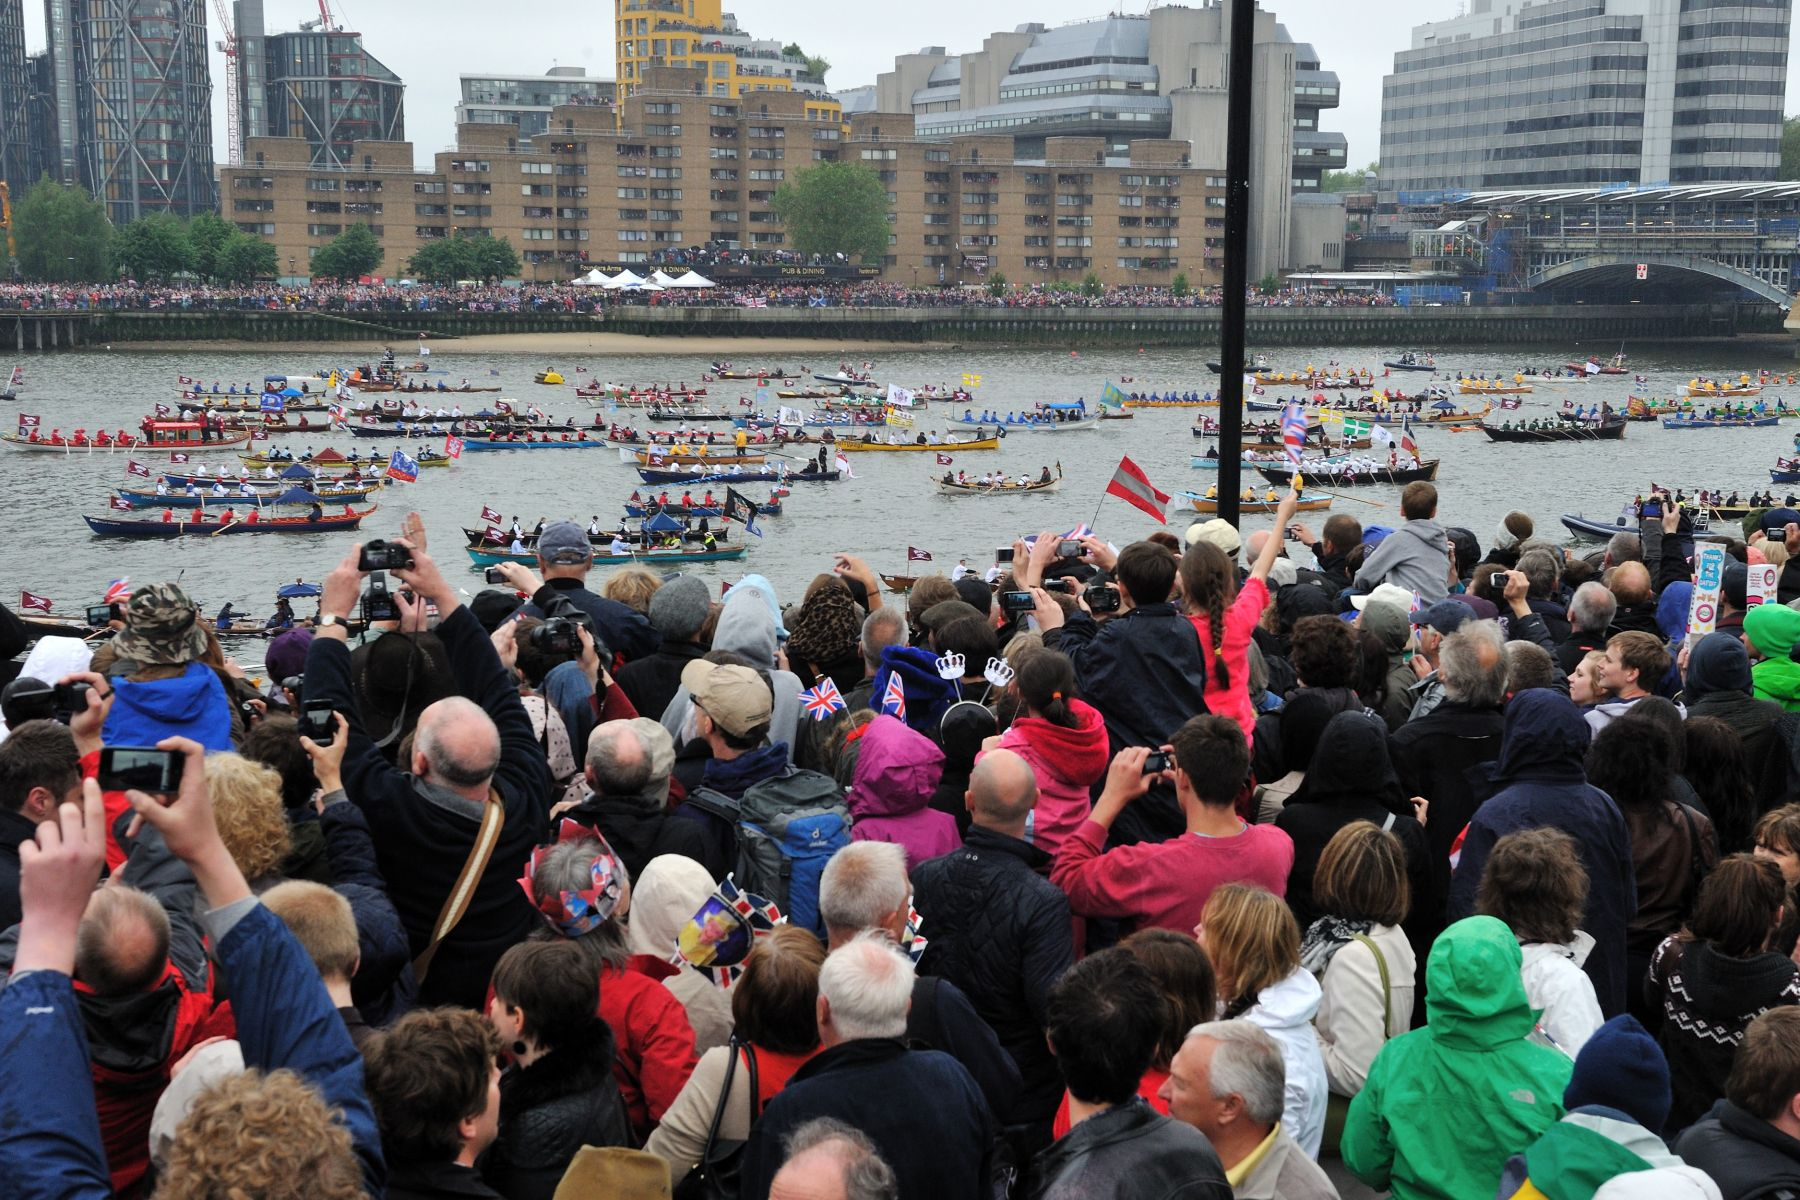 The Thames Diamond Jubilee Pageant comprised up to 1 000 boats from across the United Kingdom, the Commonwealth and around the world.